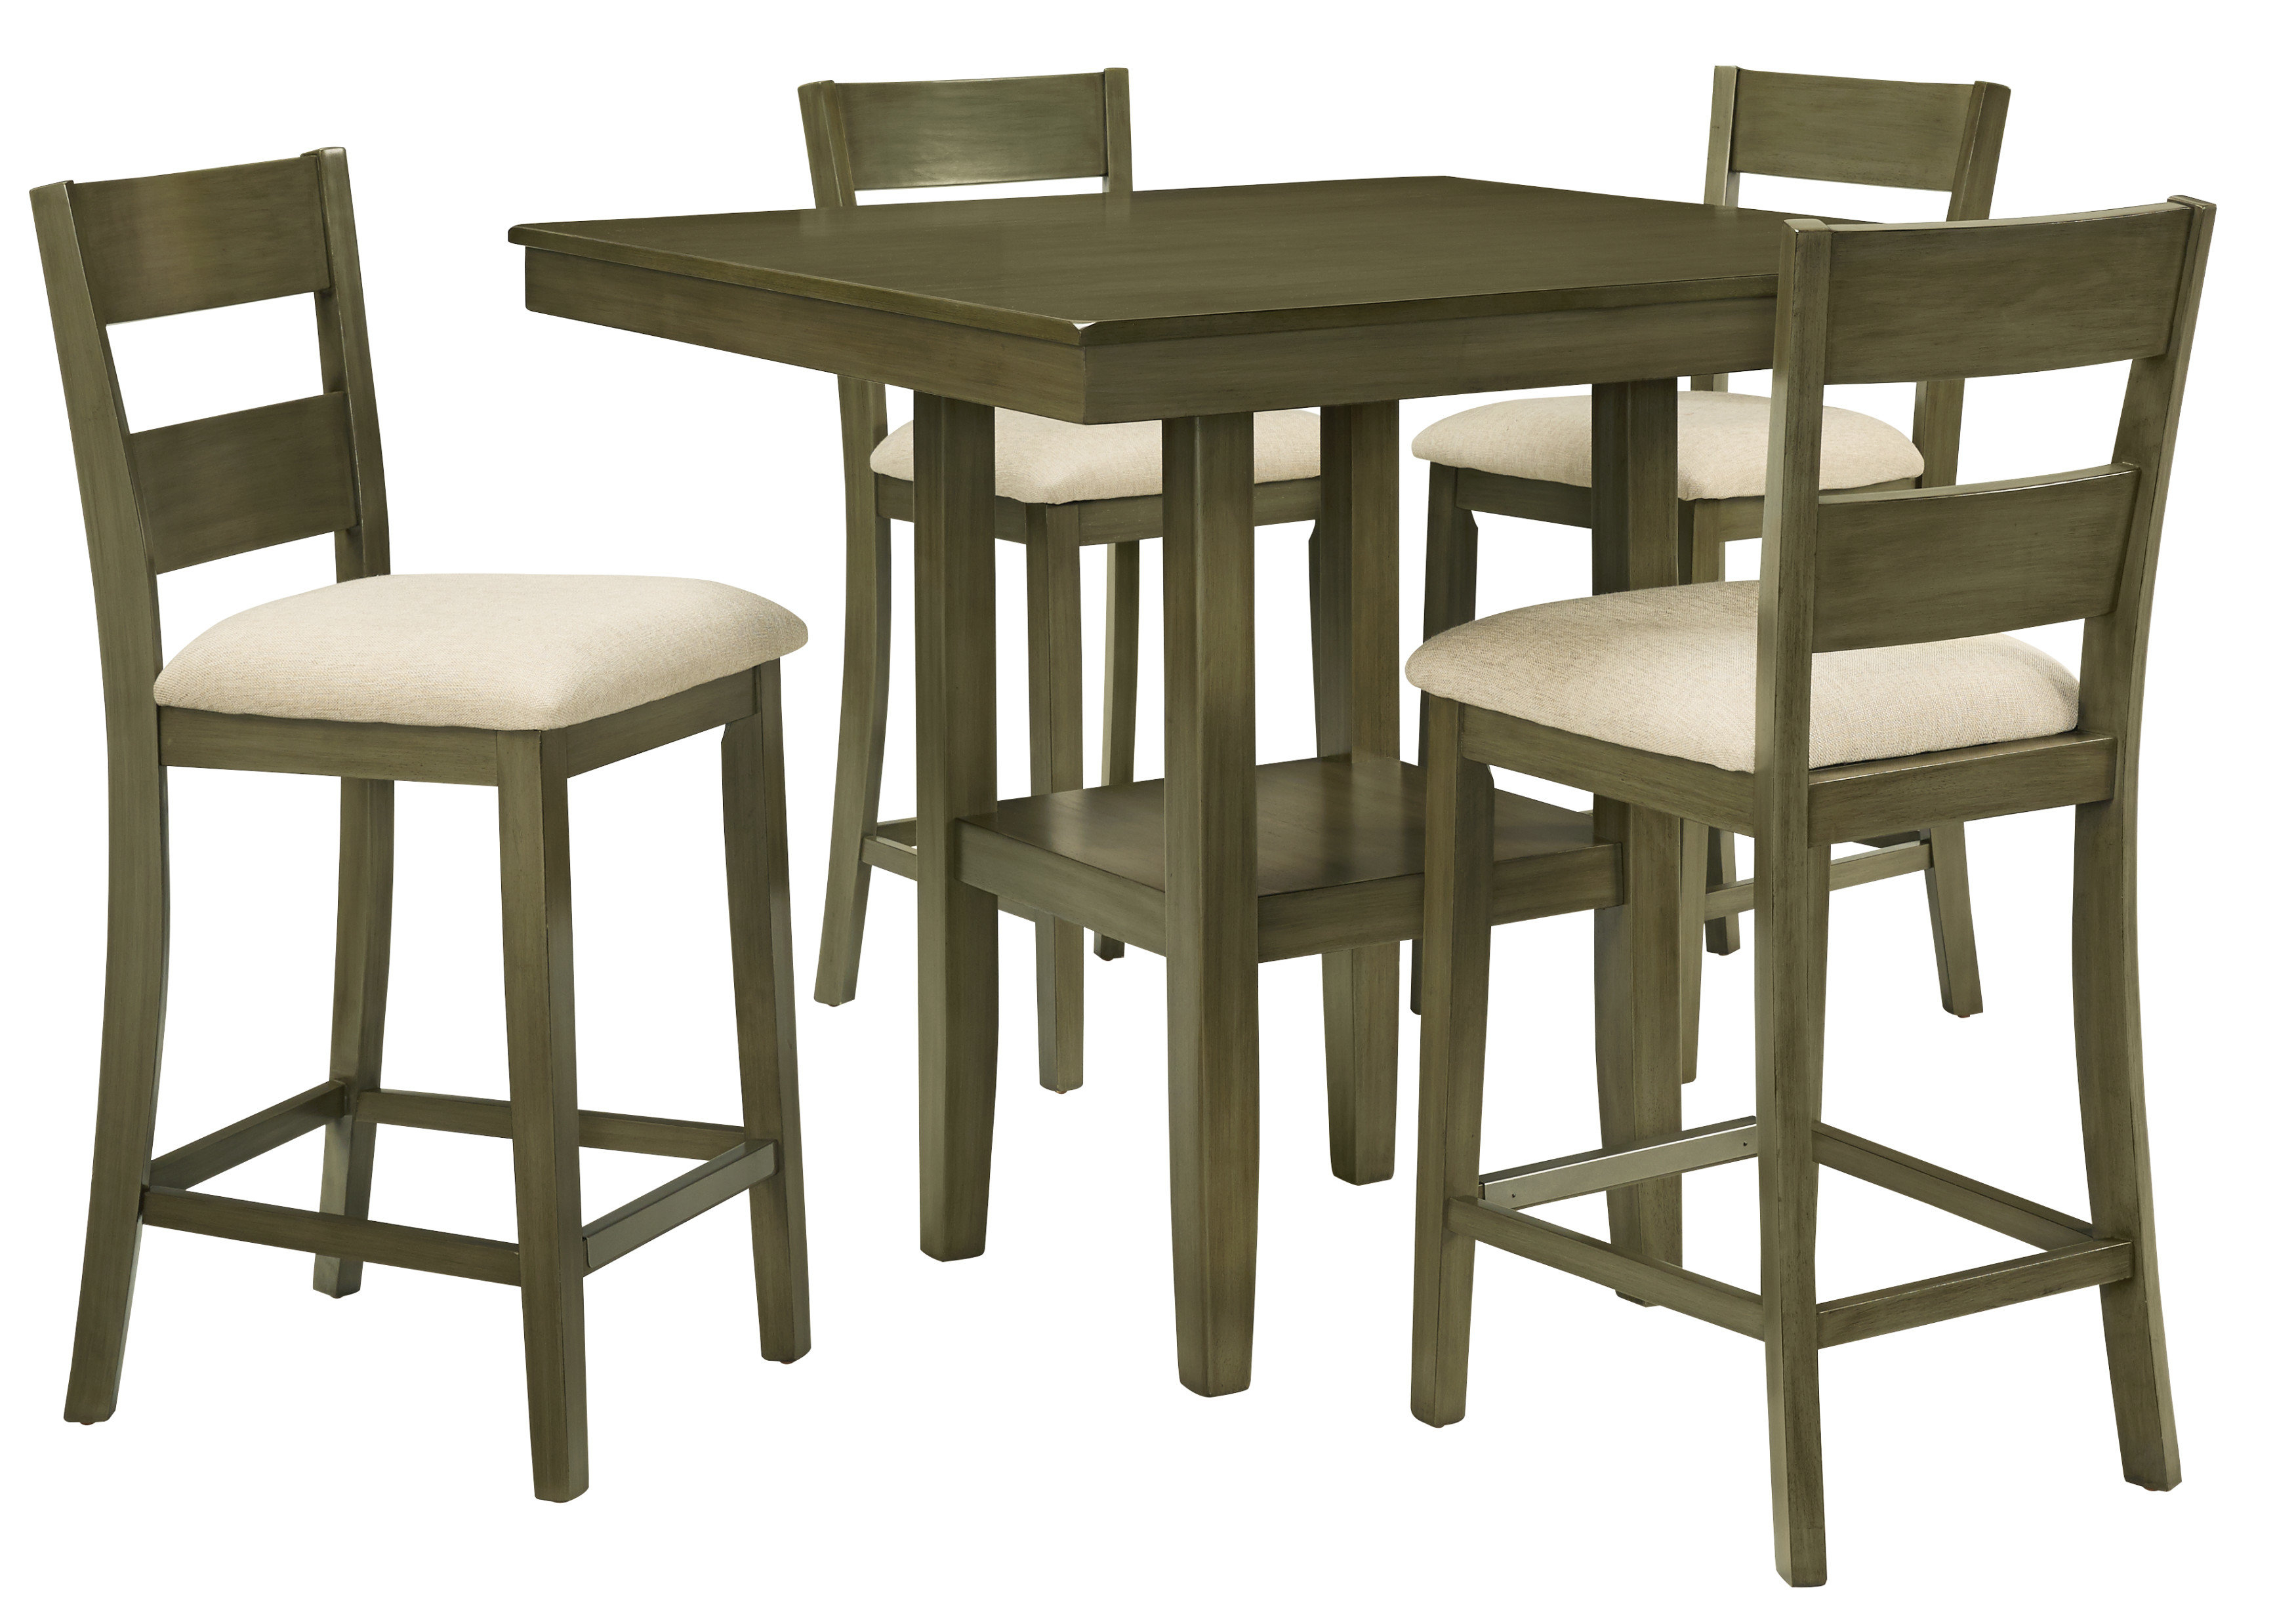 Gwyneth 5 Piece Counter Height Dining Set For Most Recent Bettencourt 3 Piece Counter Height Dining Sets (View 18 of 20)